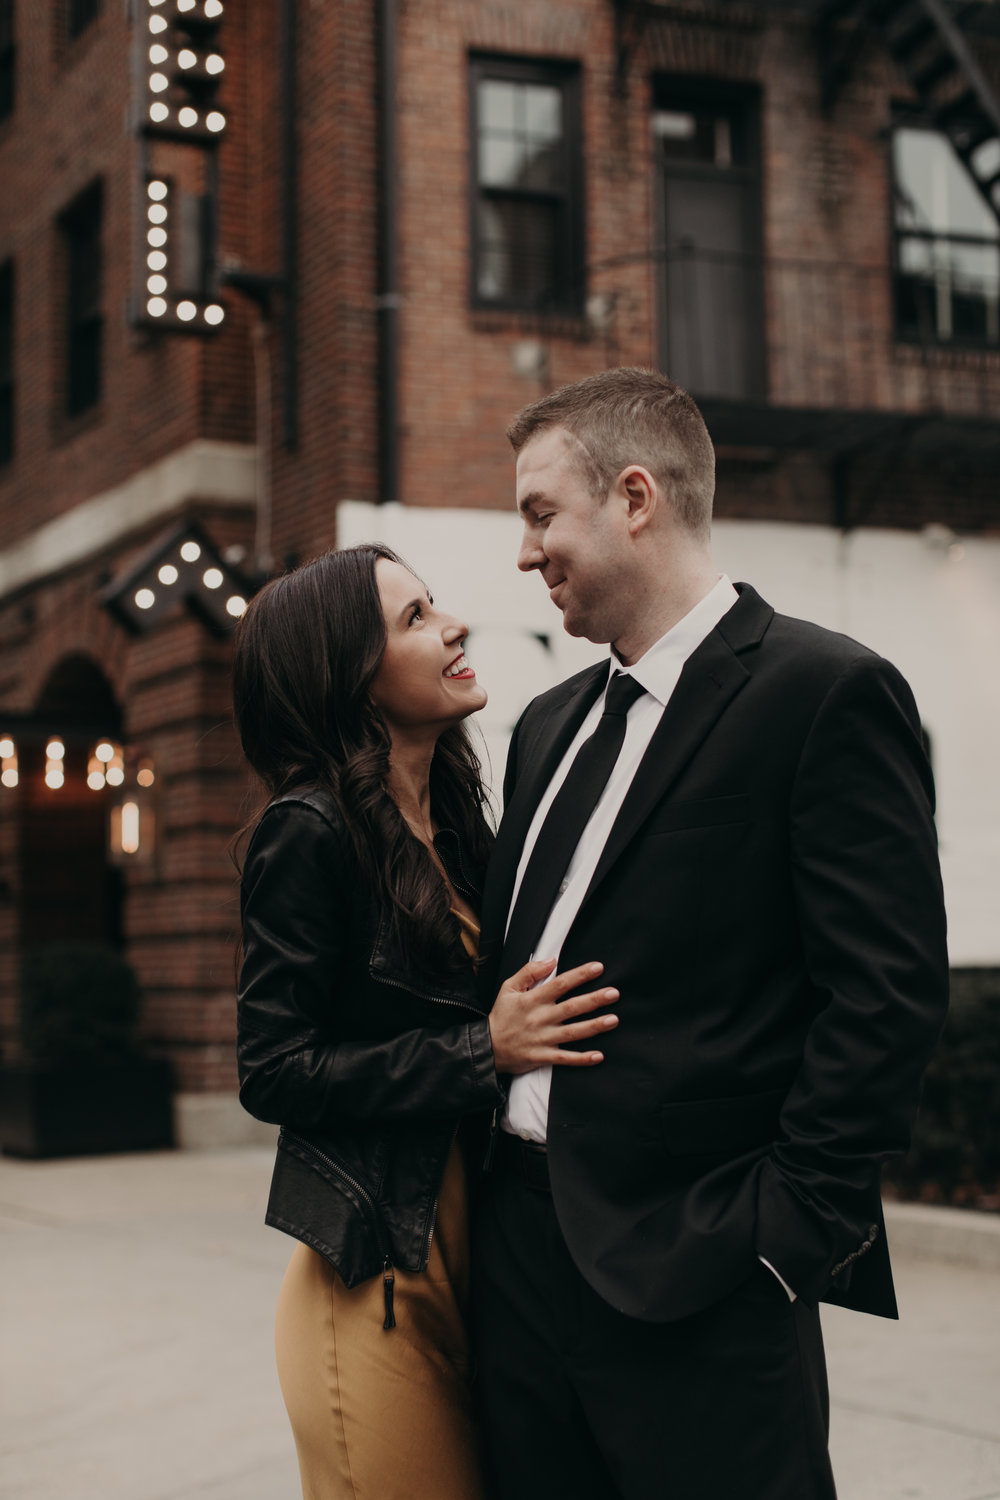 Chris_Marissa_Downtown_Providence_Rhode_Island_Engagement_Session_004.jpeg